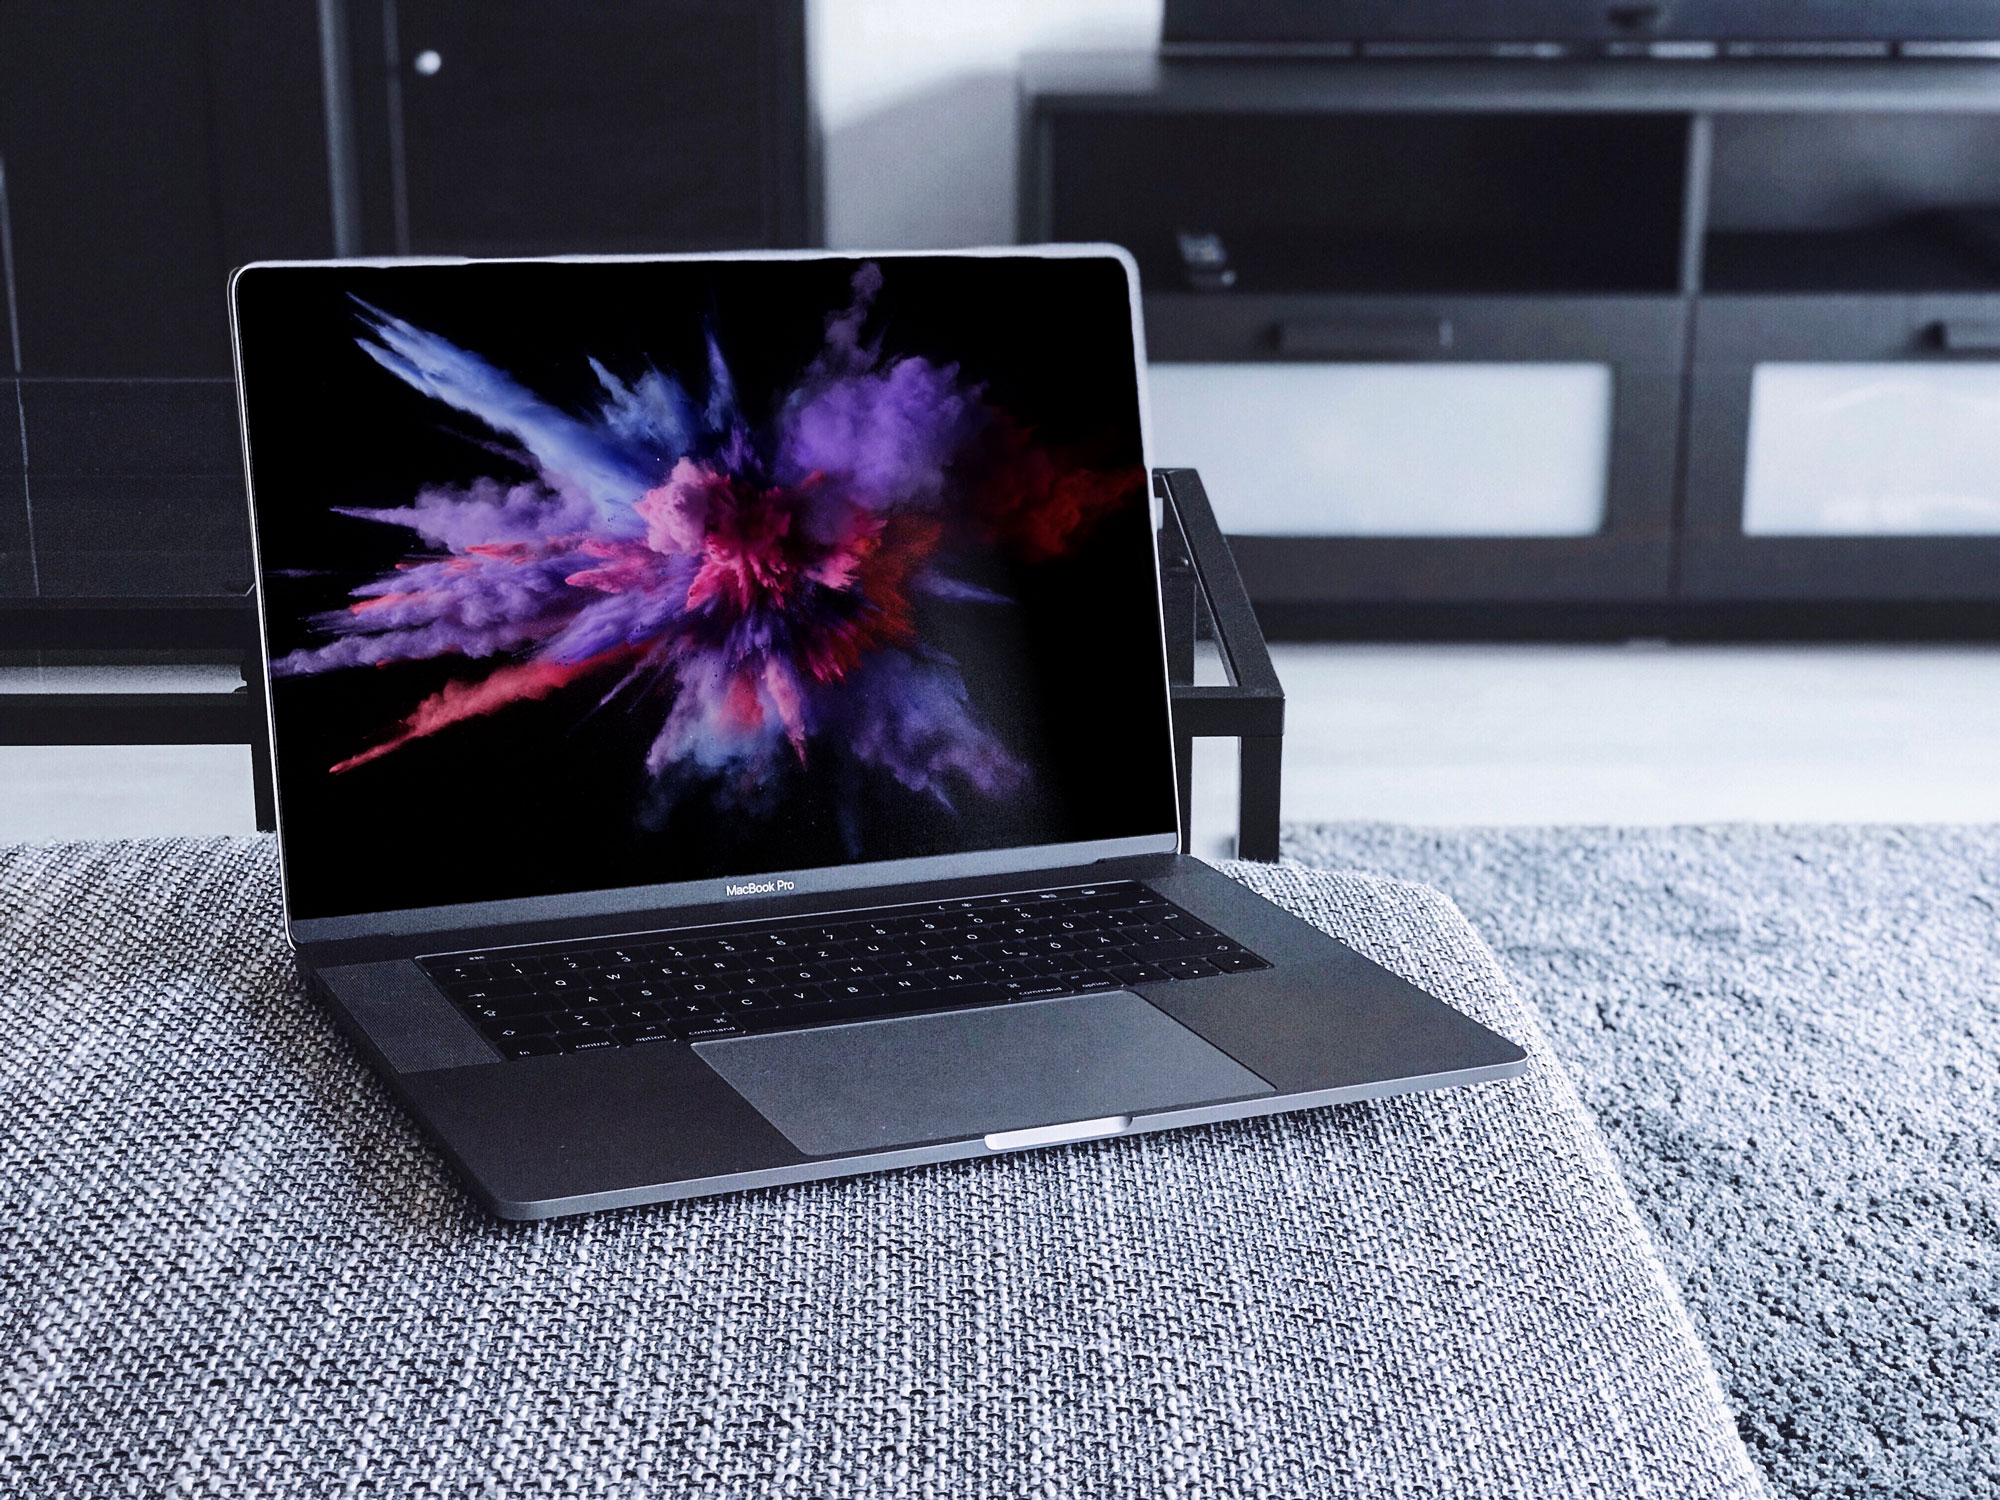 macbook on couch mockup